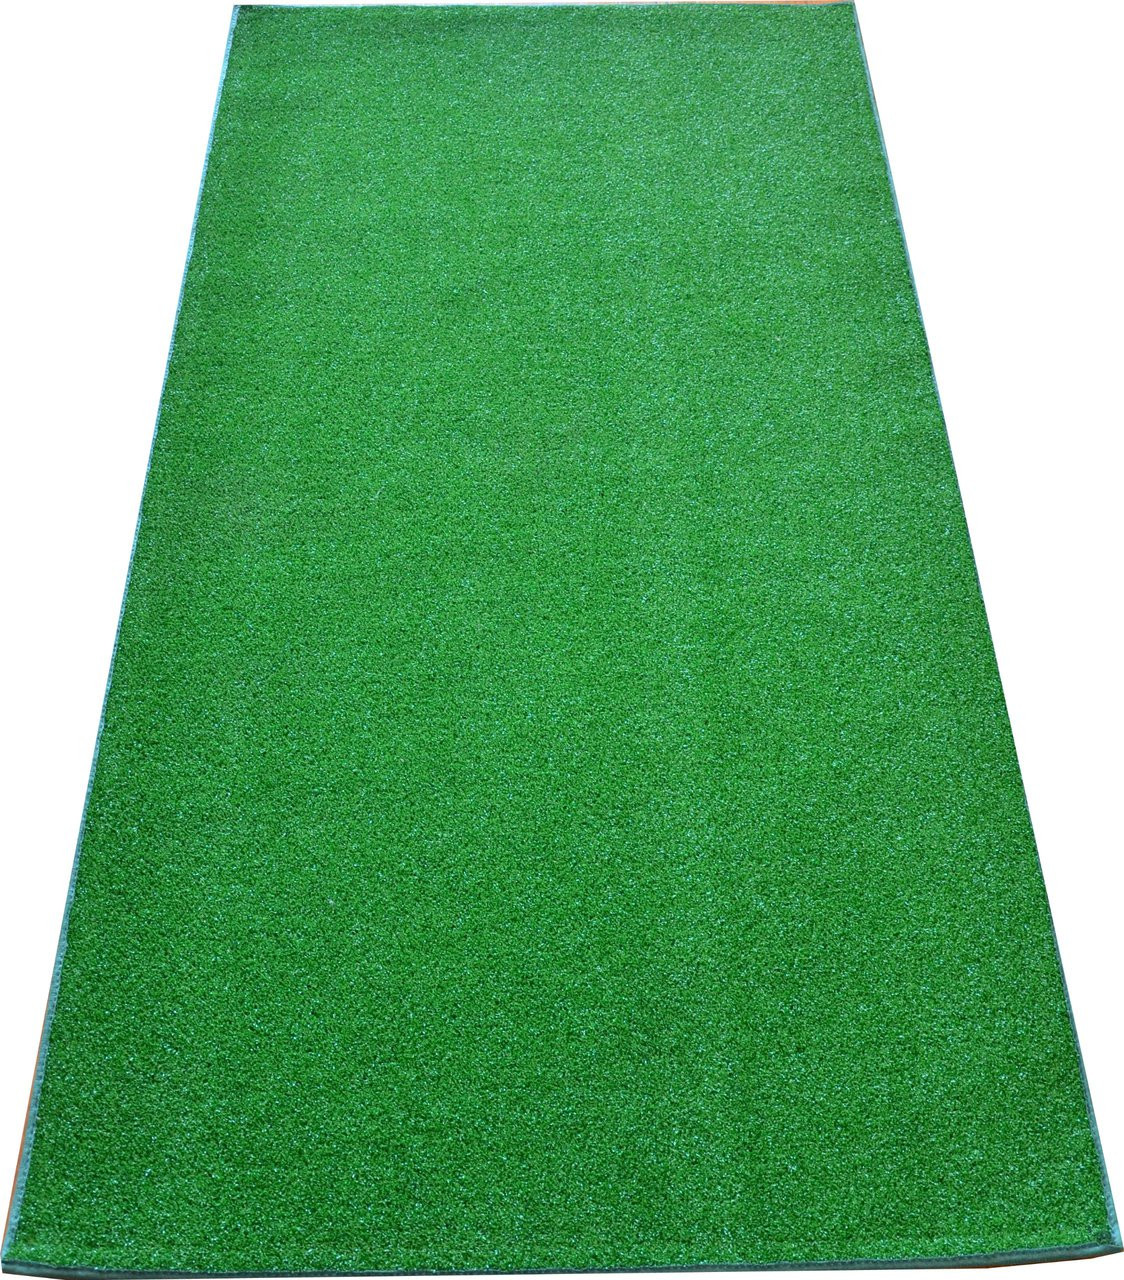 Dean premium heavy duty indoor outdoor green artificial for Indoor outdoor carpet green